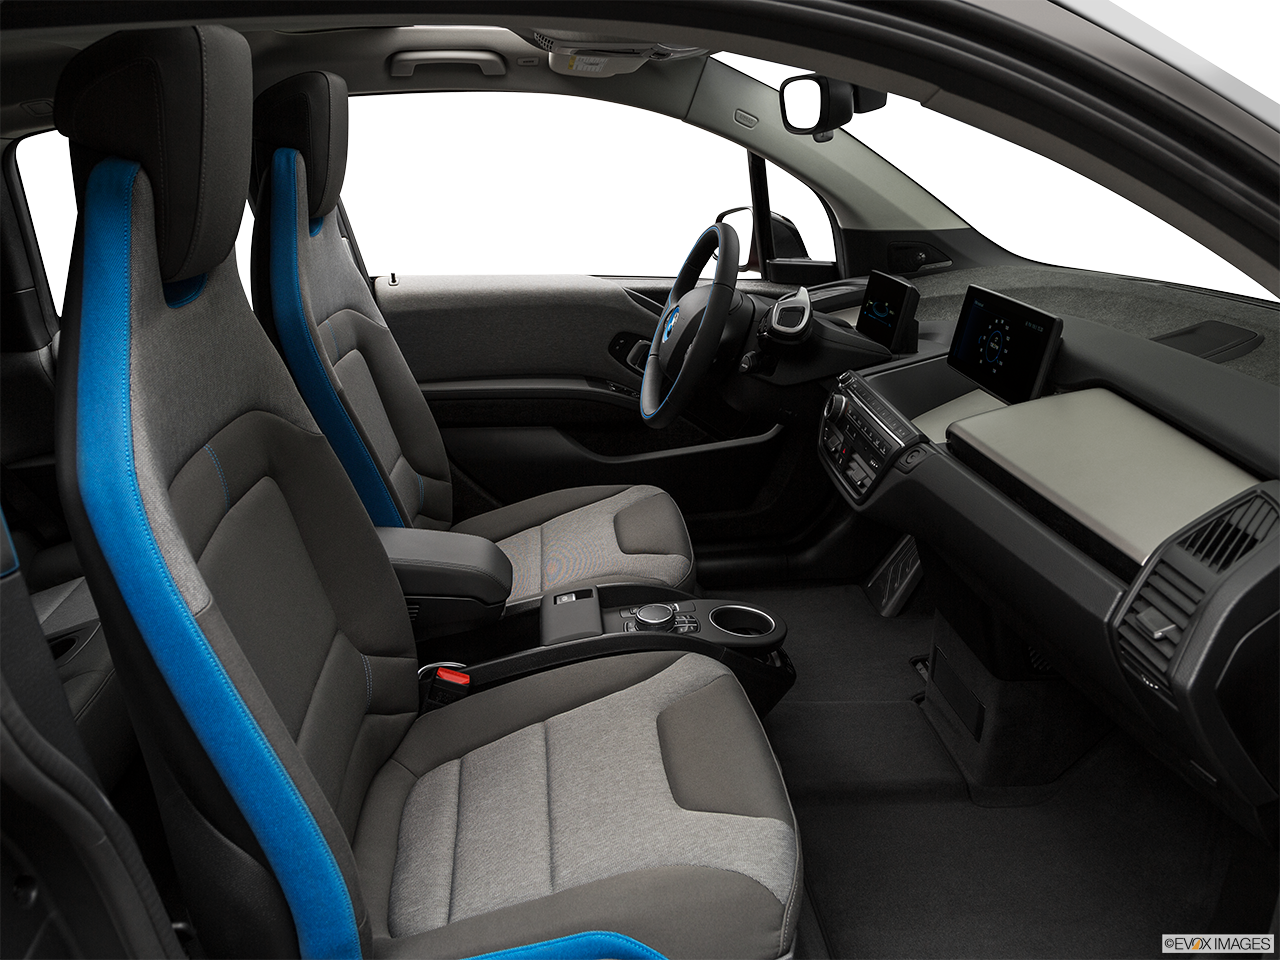 Interior view of the BMW i3